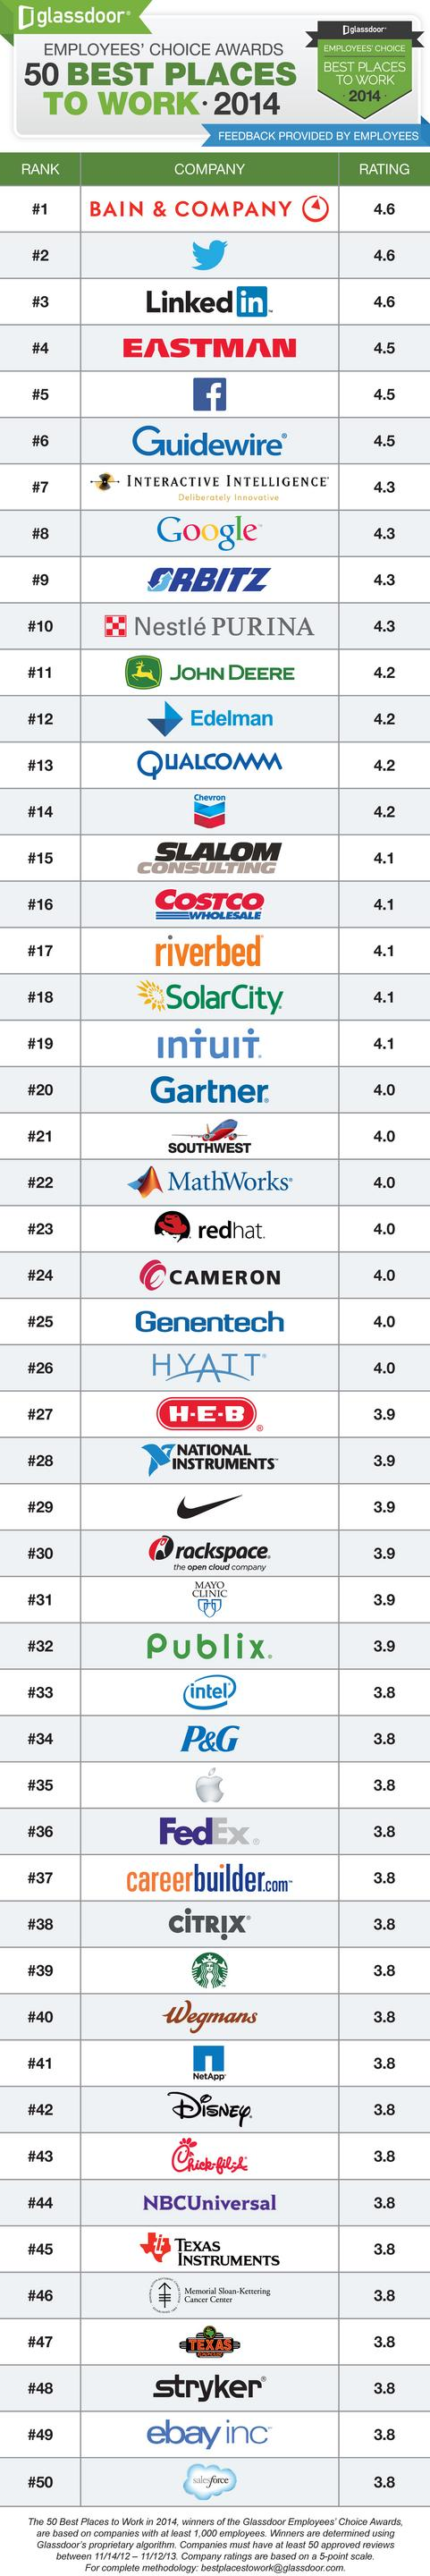 Employee rating site Glassdoor has ranked the top 50 best large companies to work for based on employee ratings from November 2012 to November 2013.